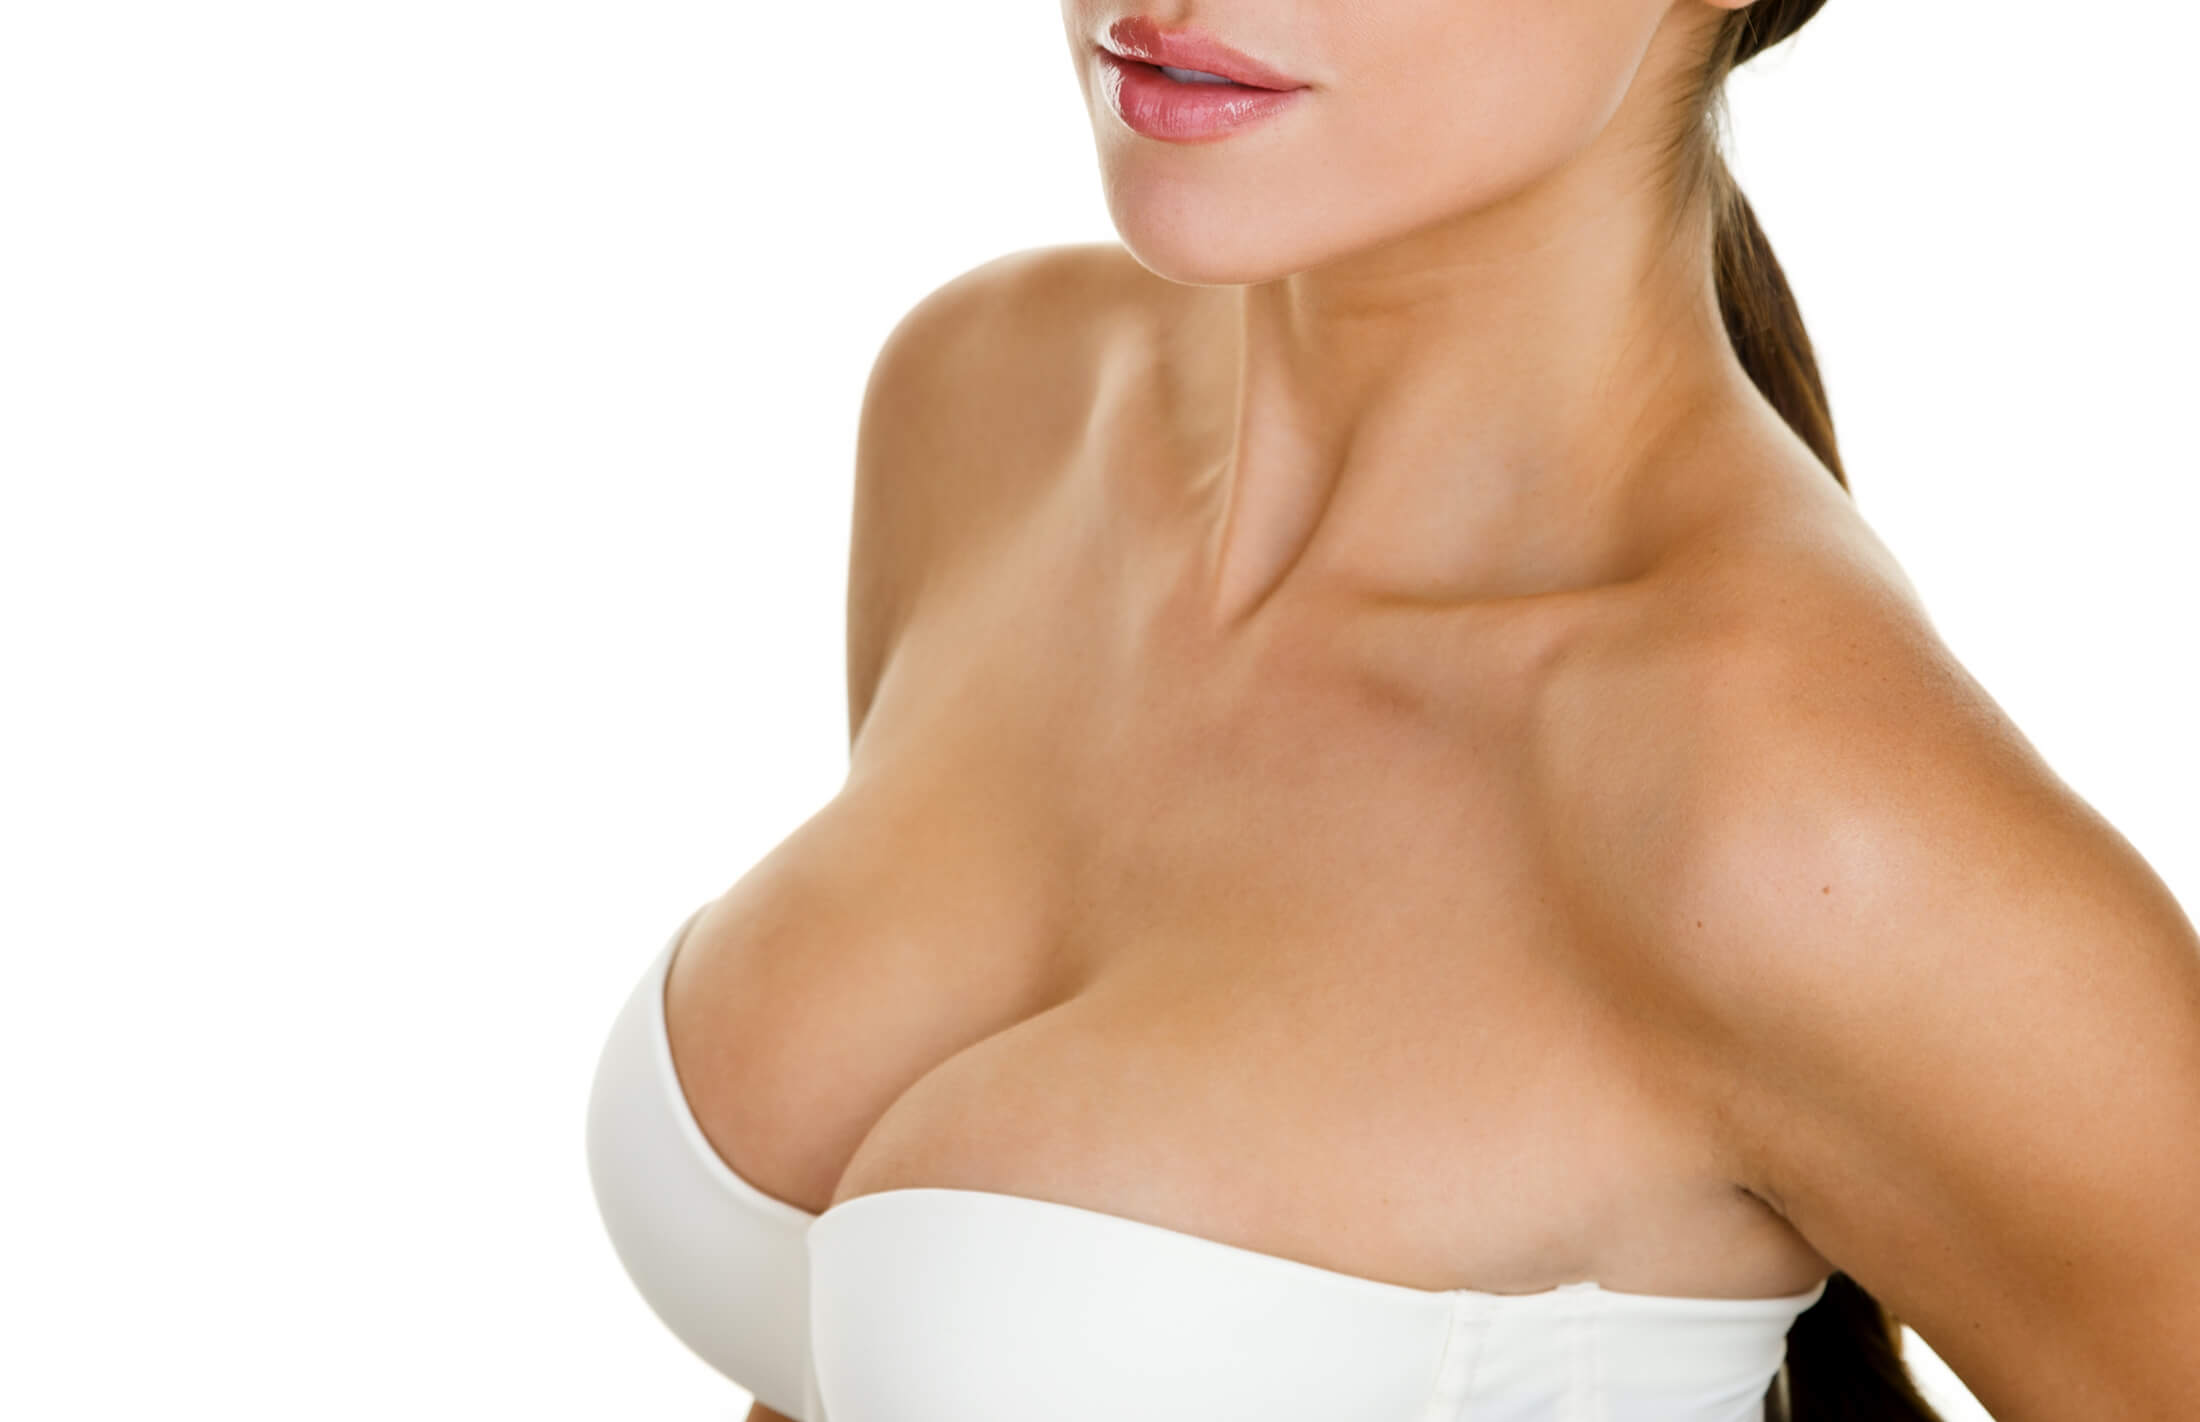 What a breast lift won't do - Breast lift surgery does not significantly change the size of your breasts, or round out the upper part of your breast. For fuller breasts, a breast lift may be combined with breast augmentation. If smaller breasts are part of the goal, a breast lift can be combined with breast reduction.